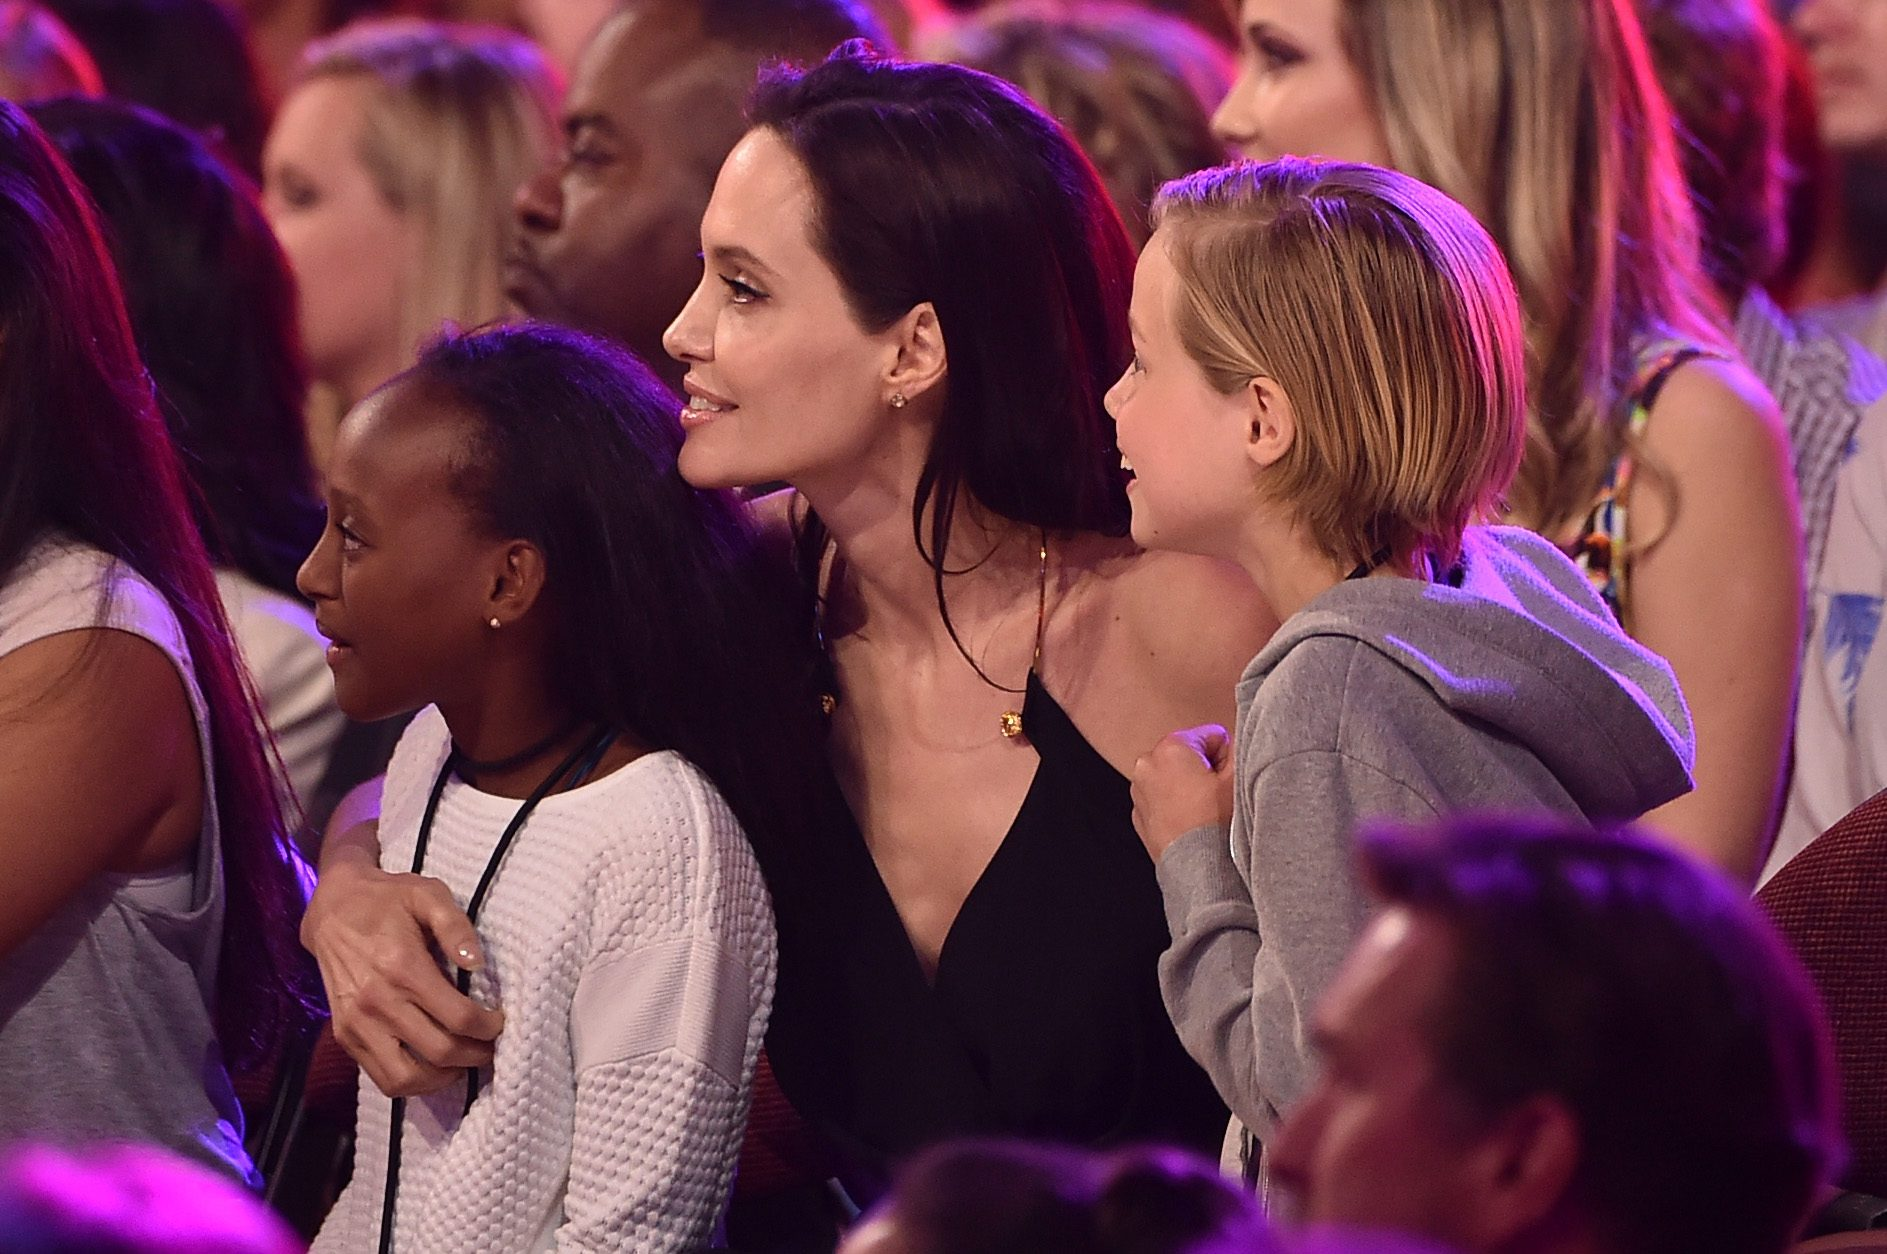 actress Angelina Jolie hugs Zahara Marley Jolie-Pitt and Shiloh Nouvel Jolie-Pitt